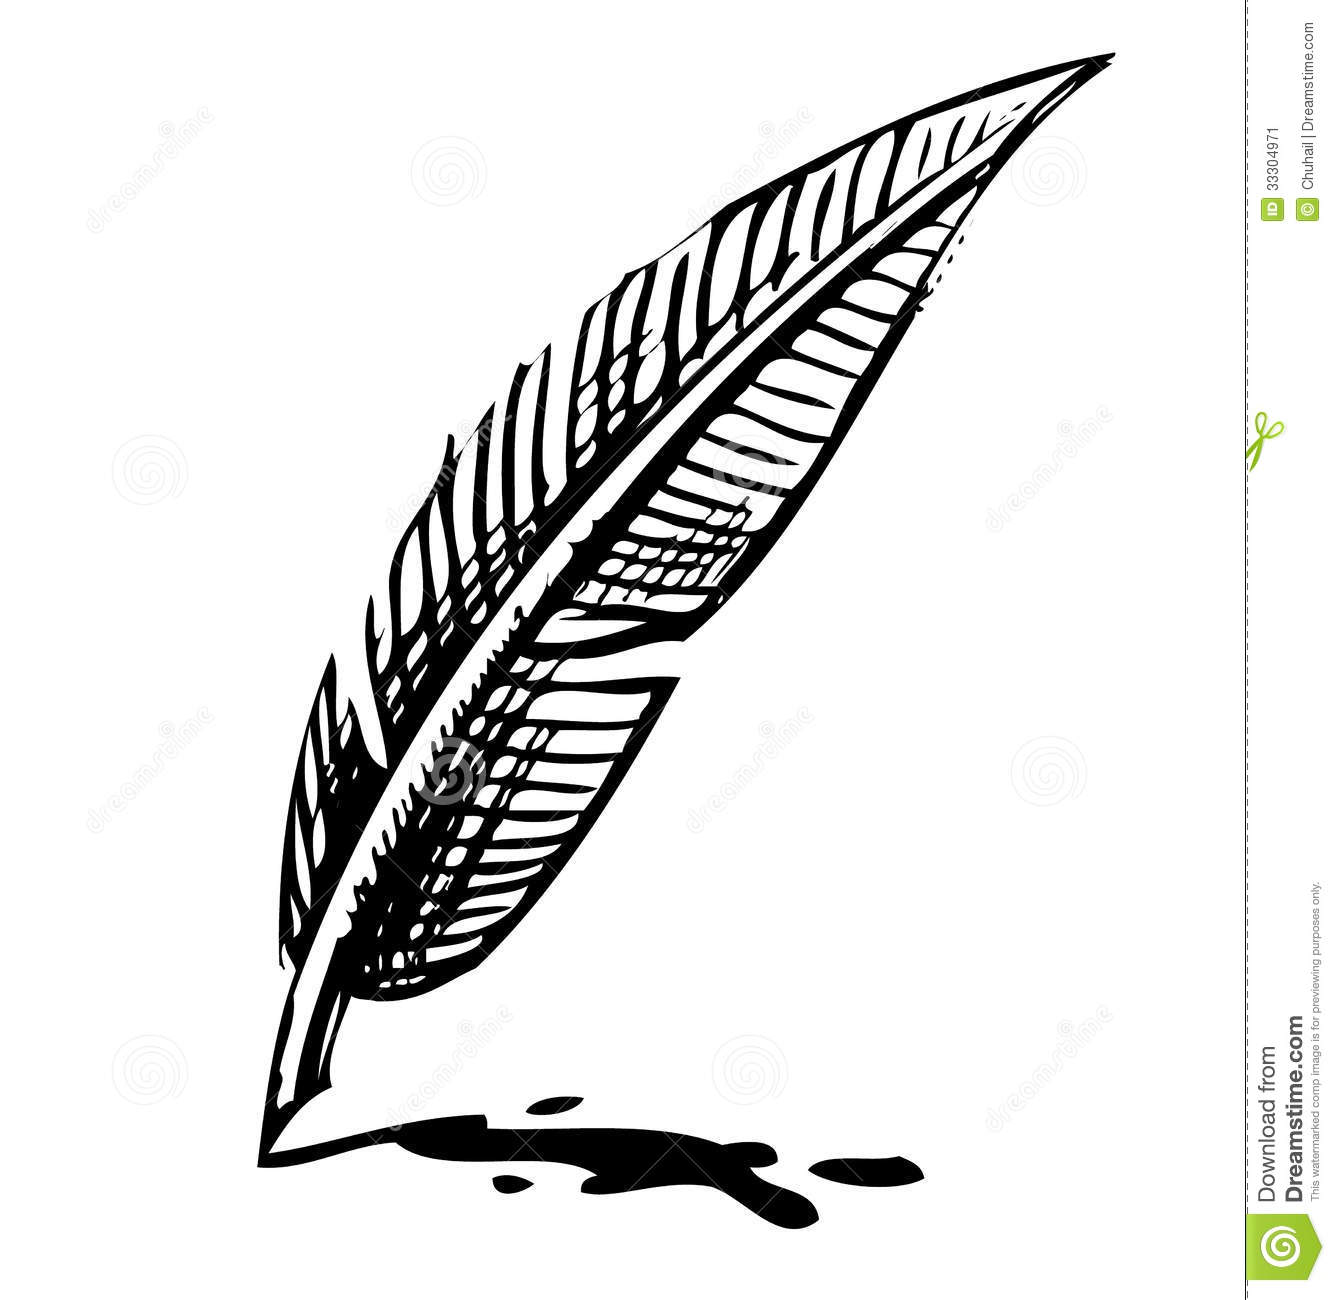 Quill writing clipart.